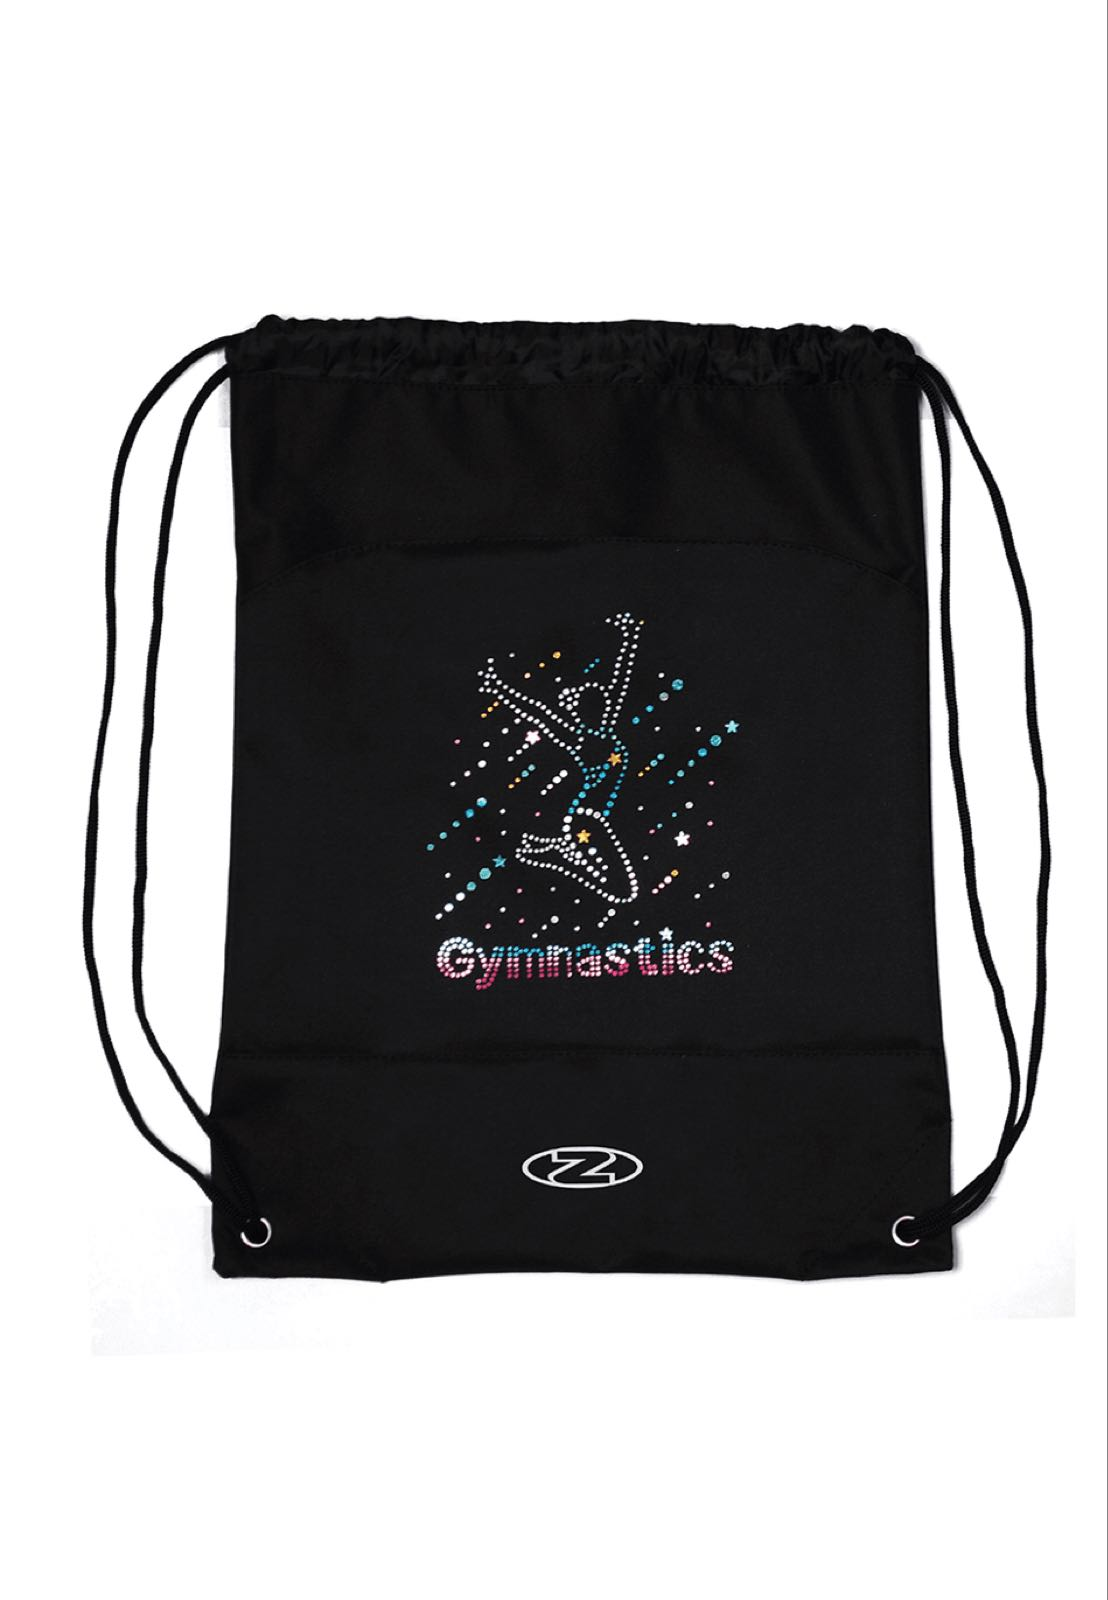 Gymnastics Drawstring Bag - Zone